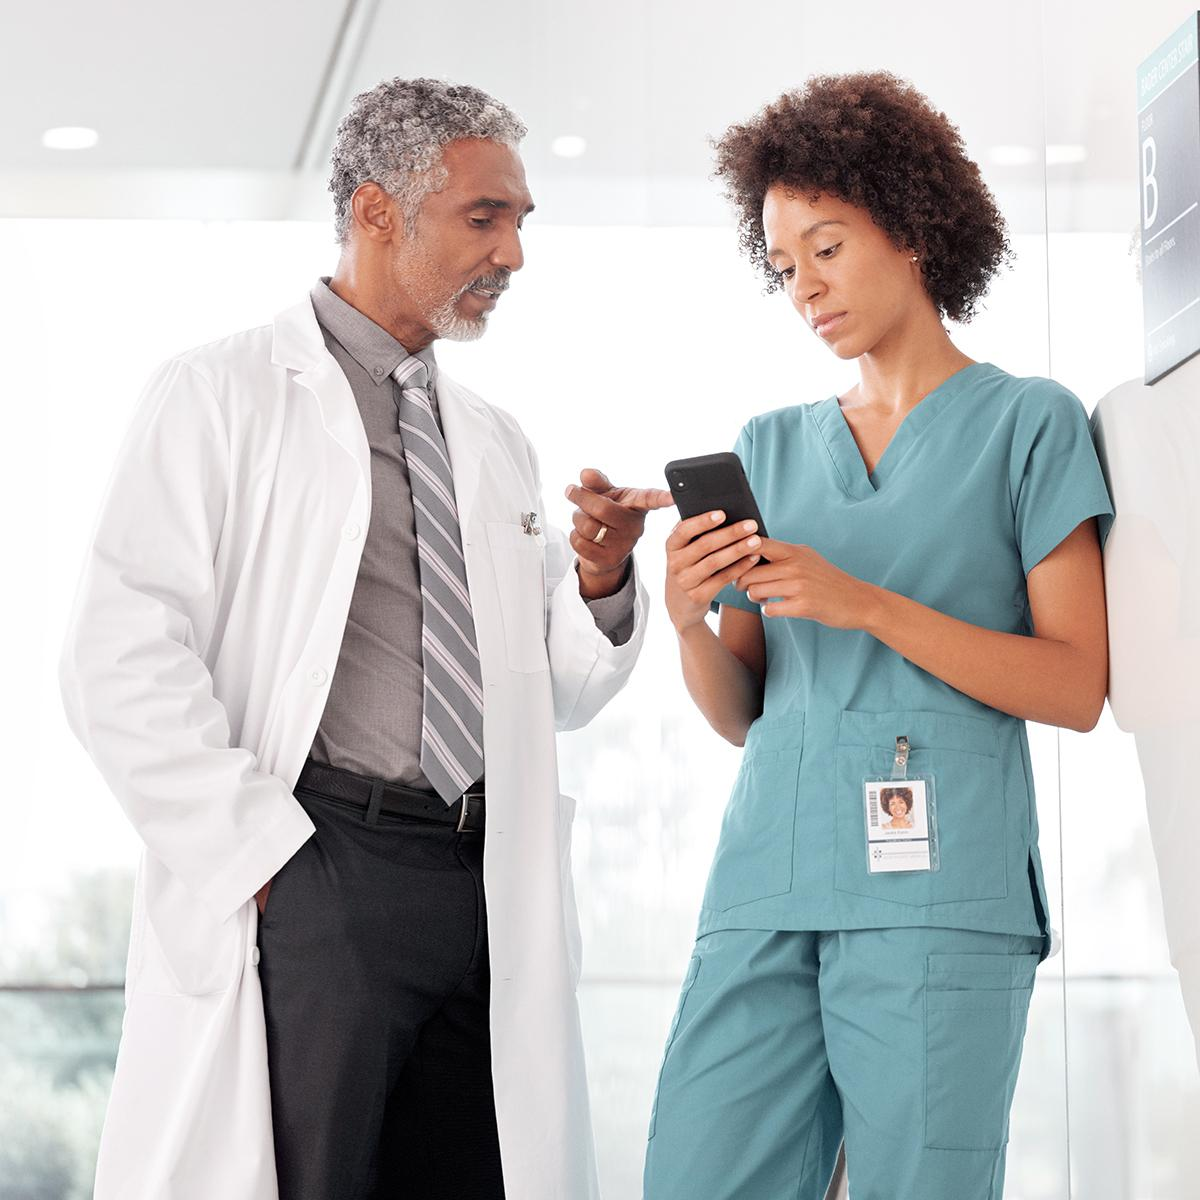 Nurse and clinician looking at a smartphone